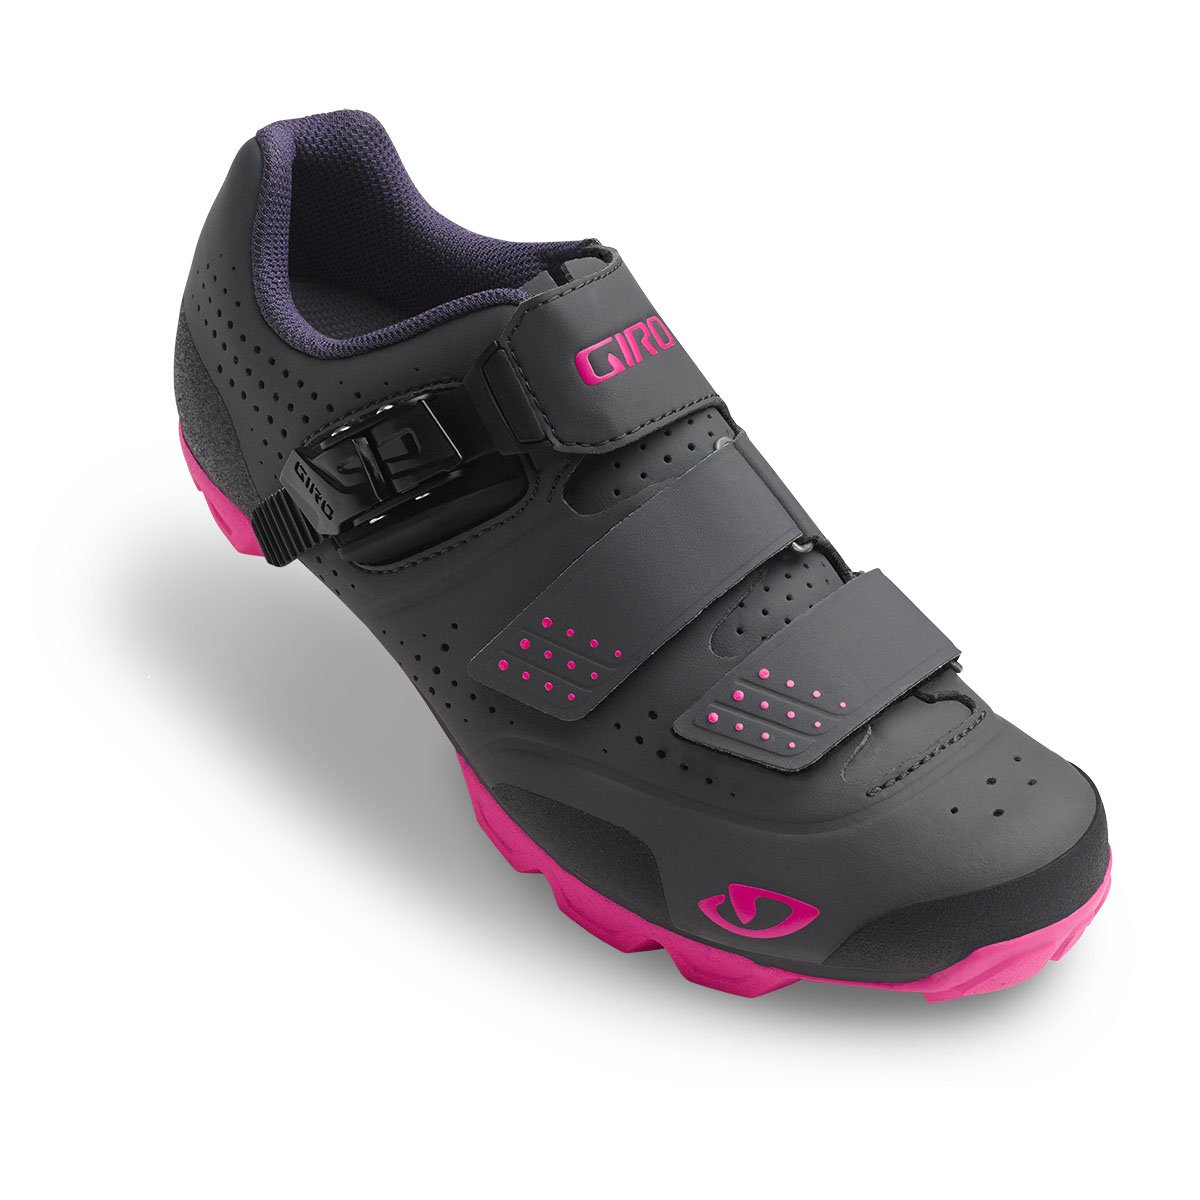 Giro Manta R Cycling Shoes - Women's B01MEDCNNZ 40 EU|Dark Shadow/Bright Pink